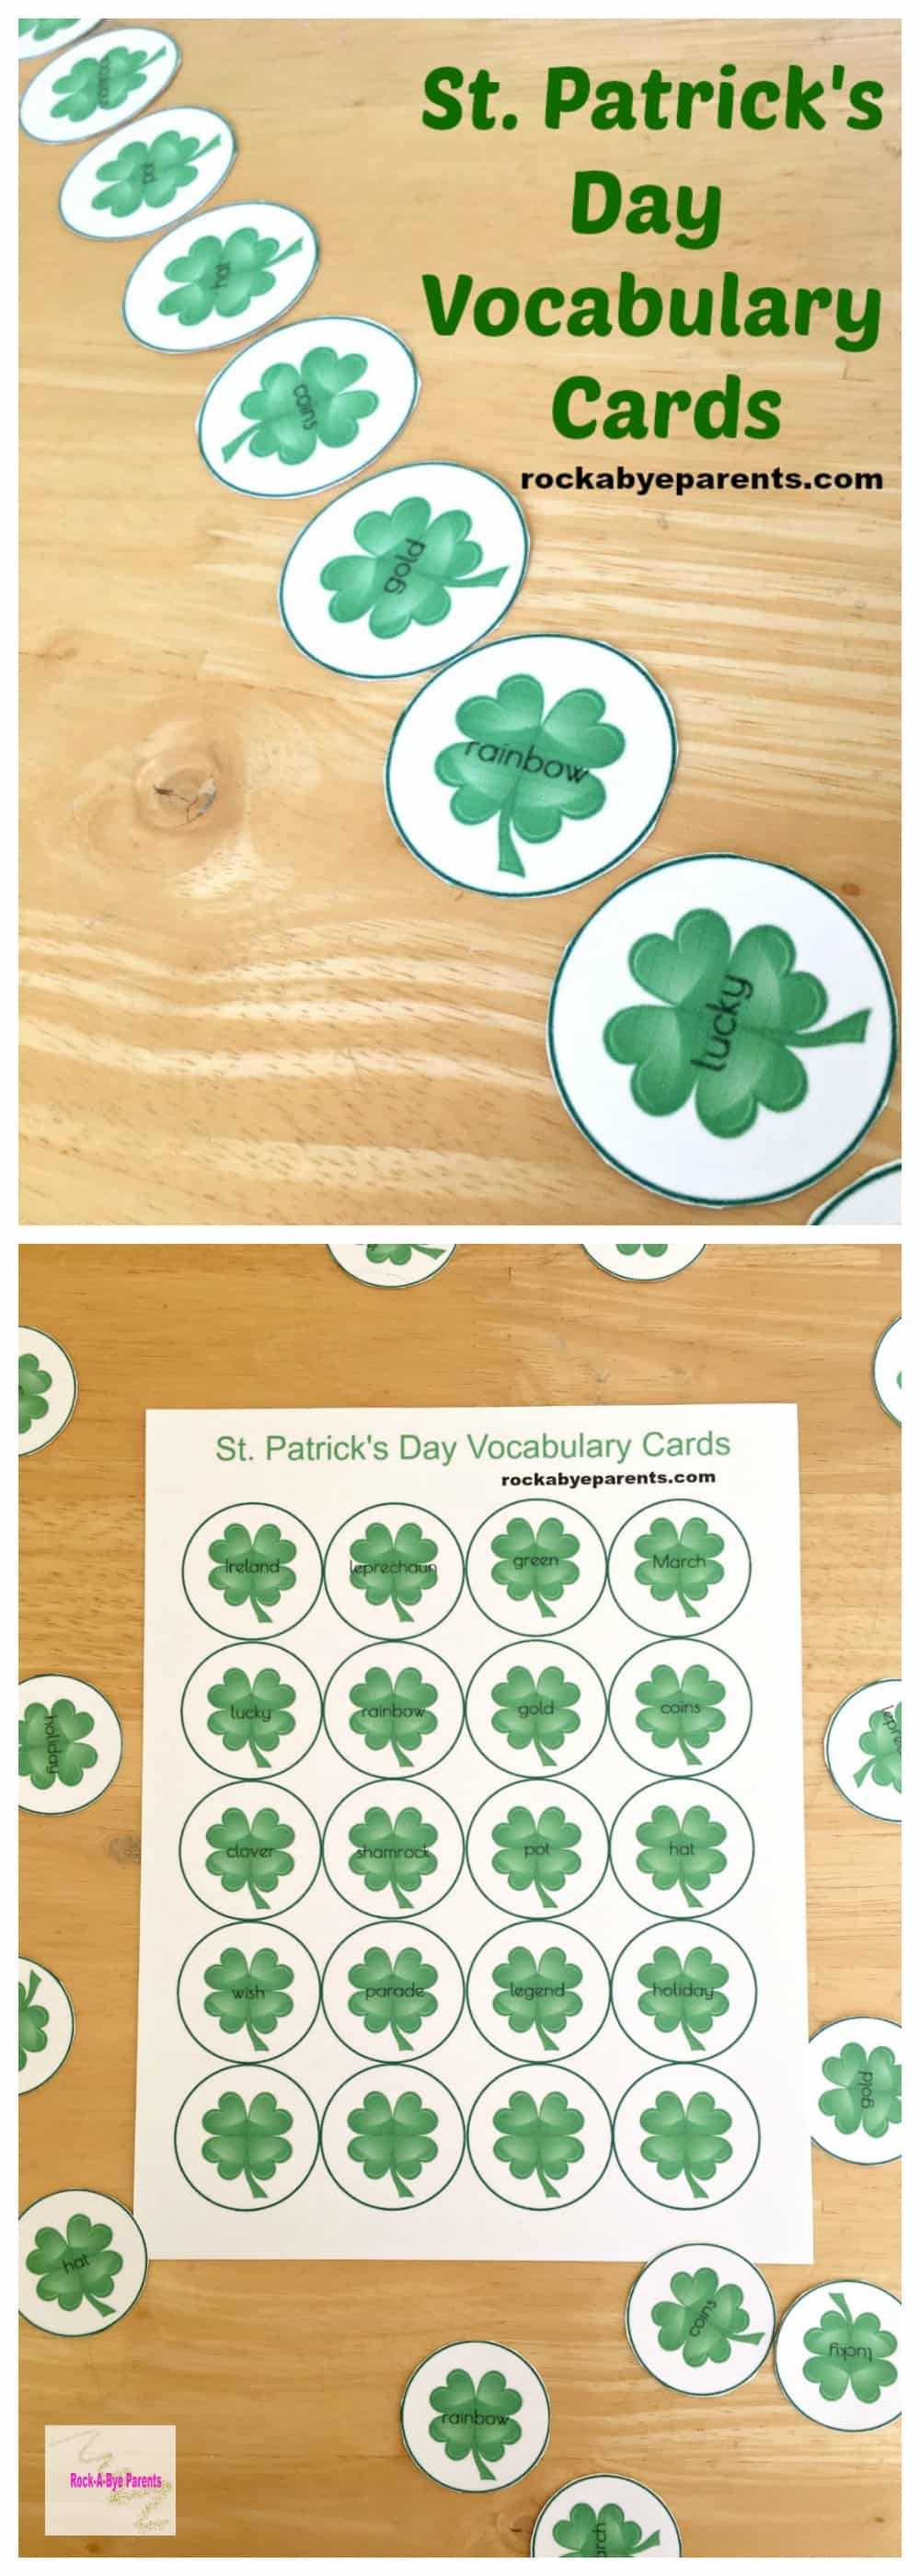 Add some St. Patrick's Day fun to your next language arts lesson with these St. Patrick's Day Vocabulary Cards printable.